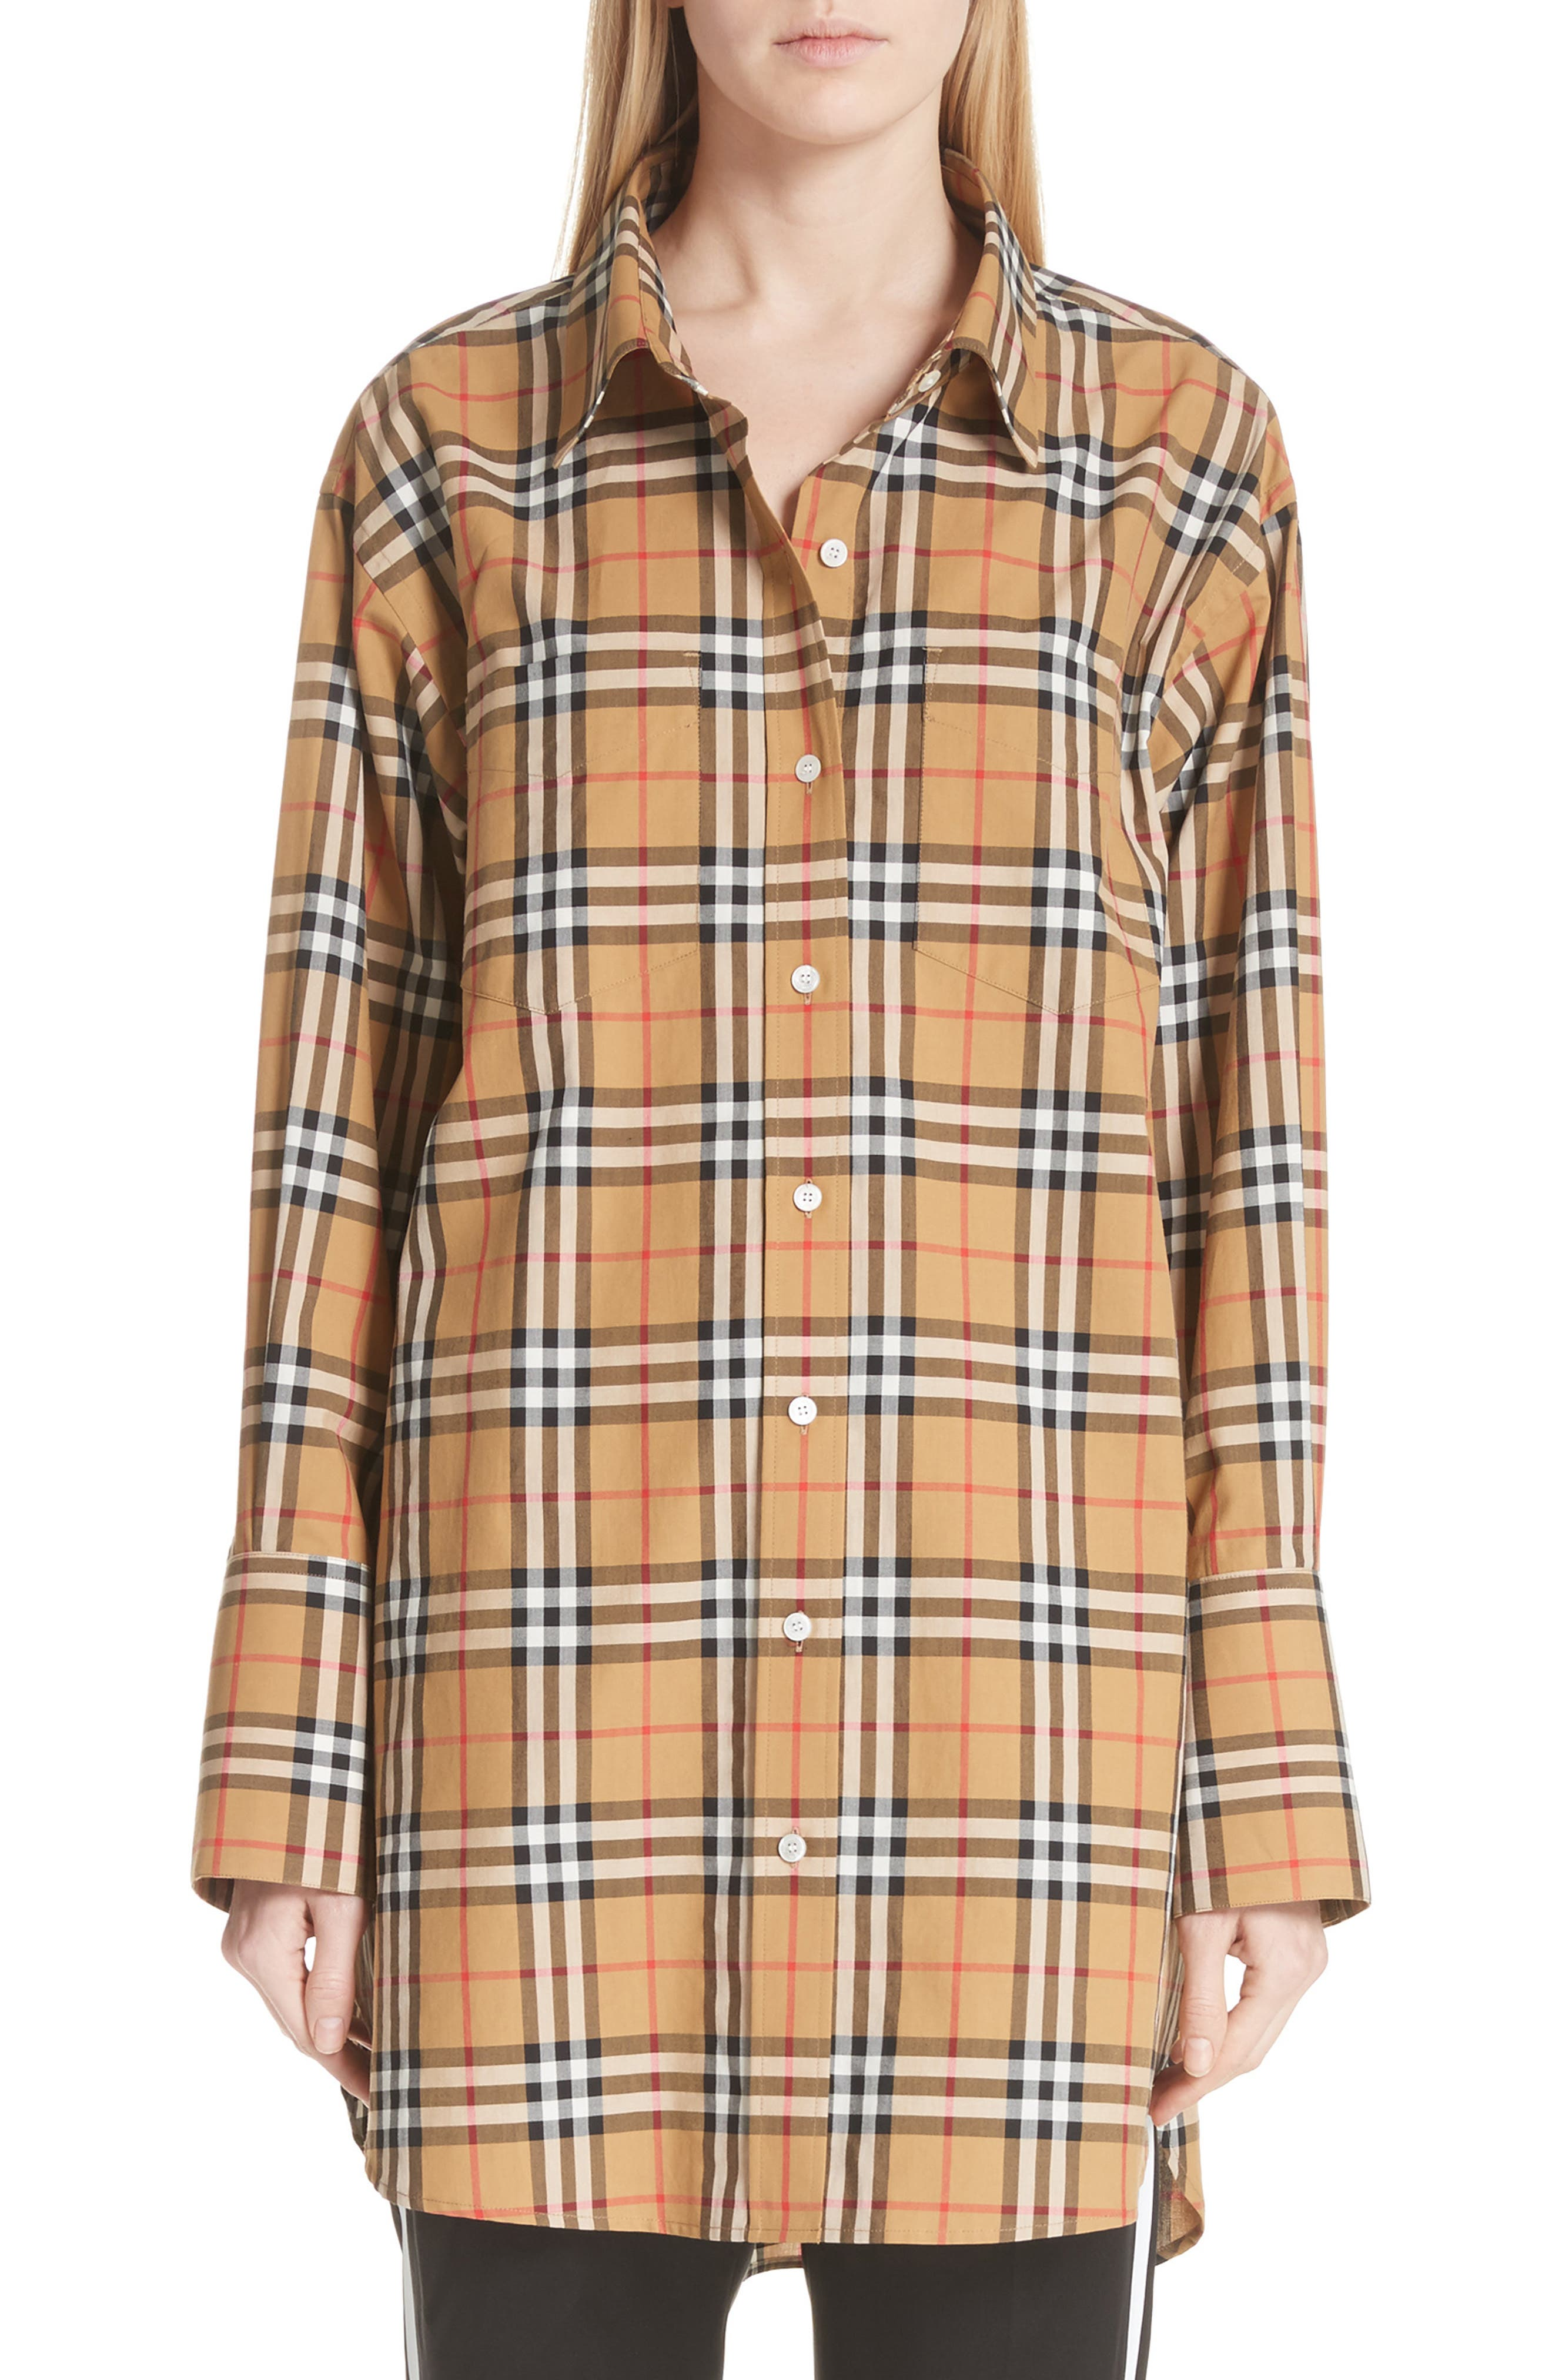 BURBERRY Redwing Vintage Check Cotton Shirt, Main, color, ANTIQUE YELLOW